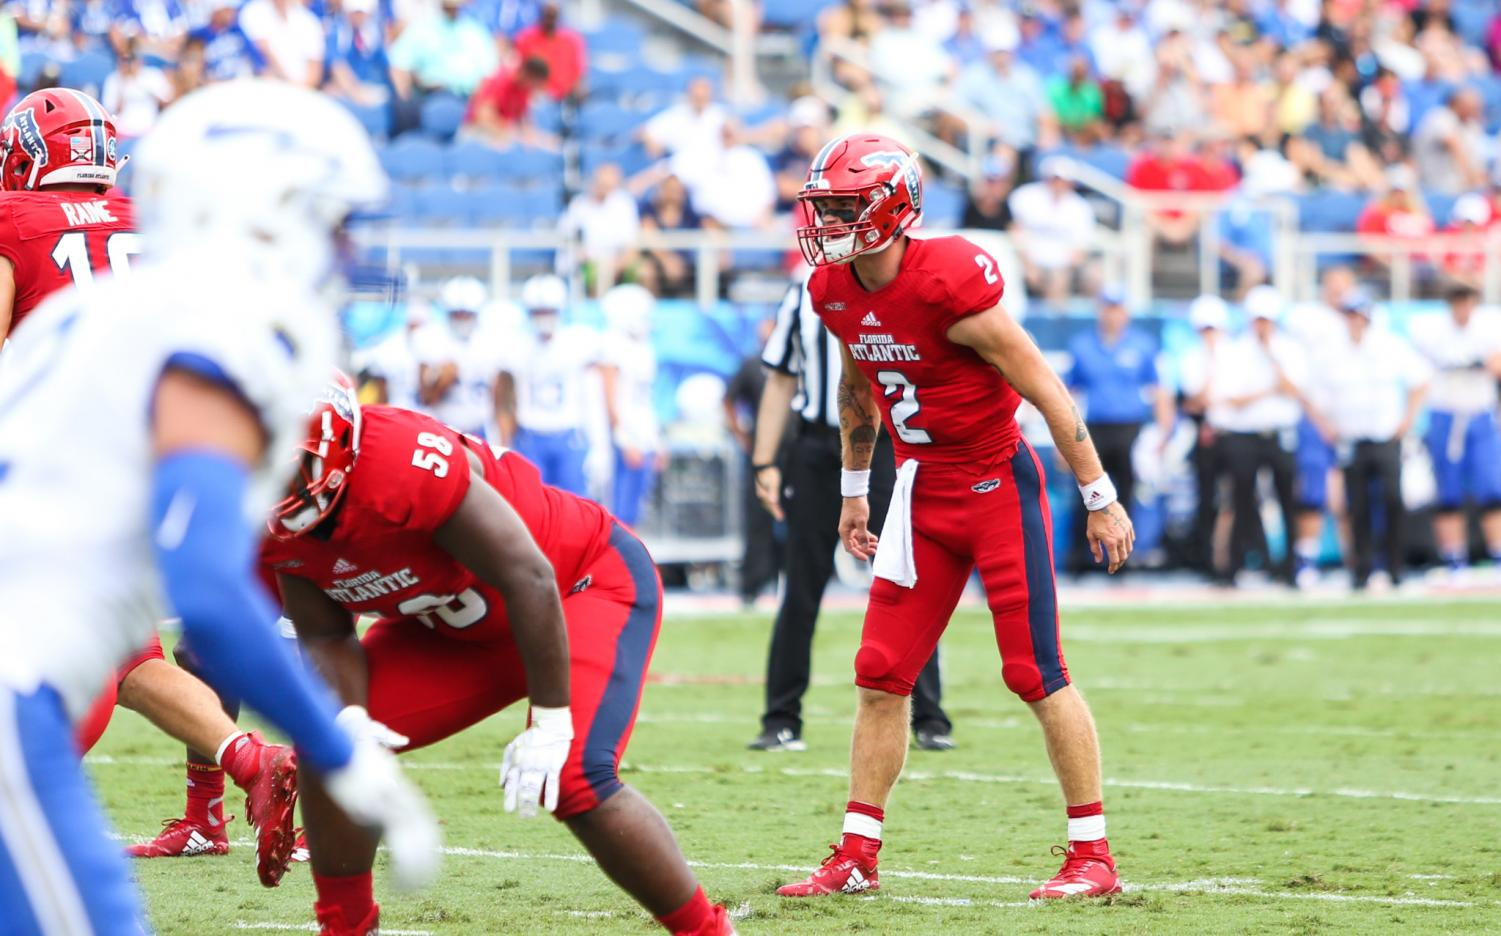 FAU redshirt sophomore QB Chris Robison reinstated with the team after receiving an indefinite suspension back in March.  Photo by: Alexander Rodriguez